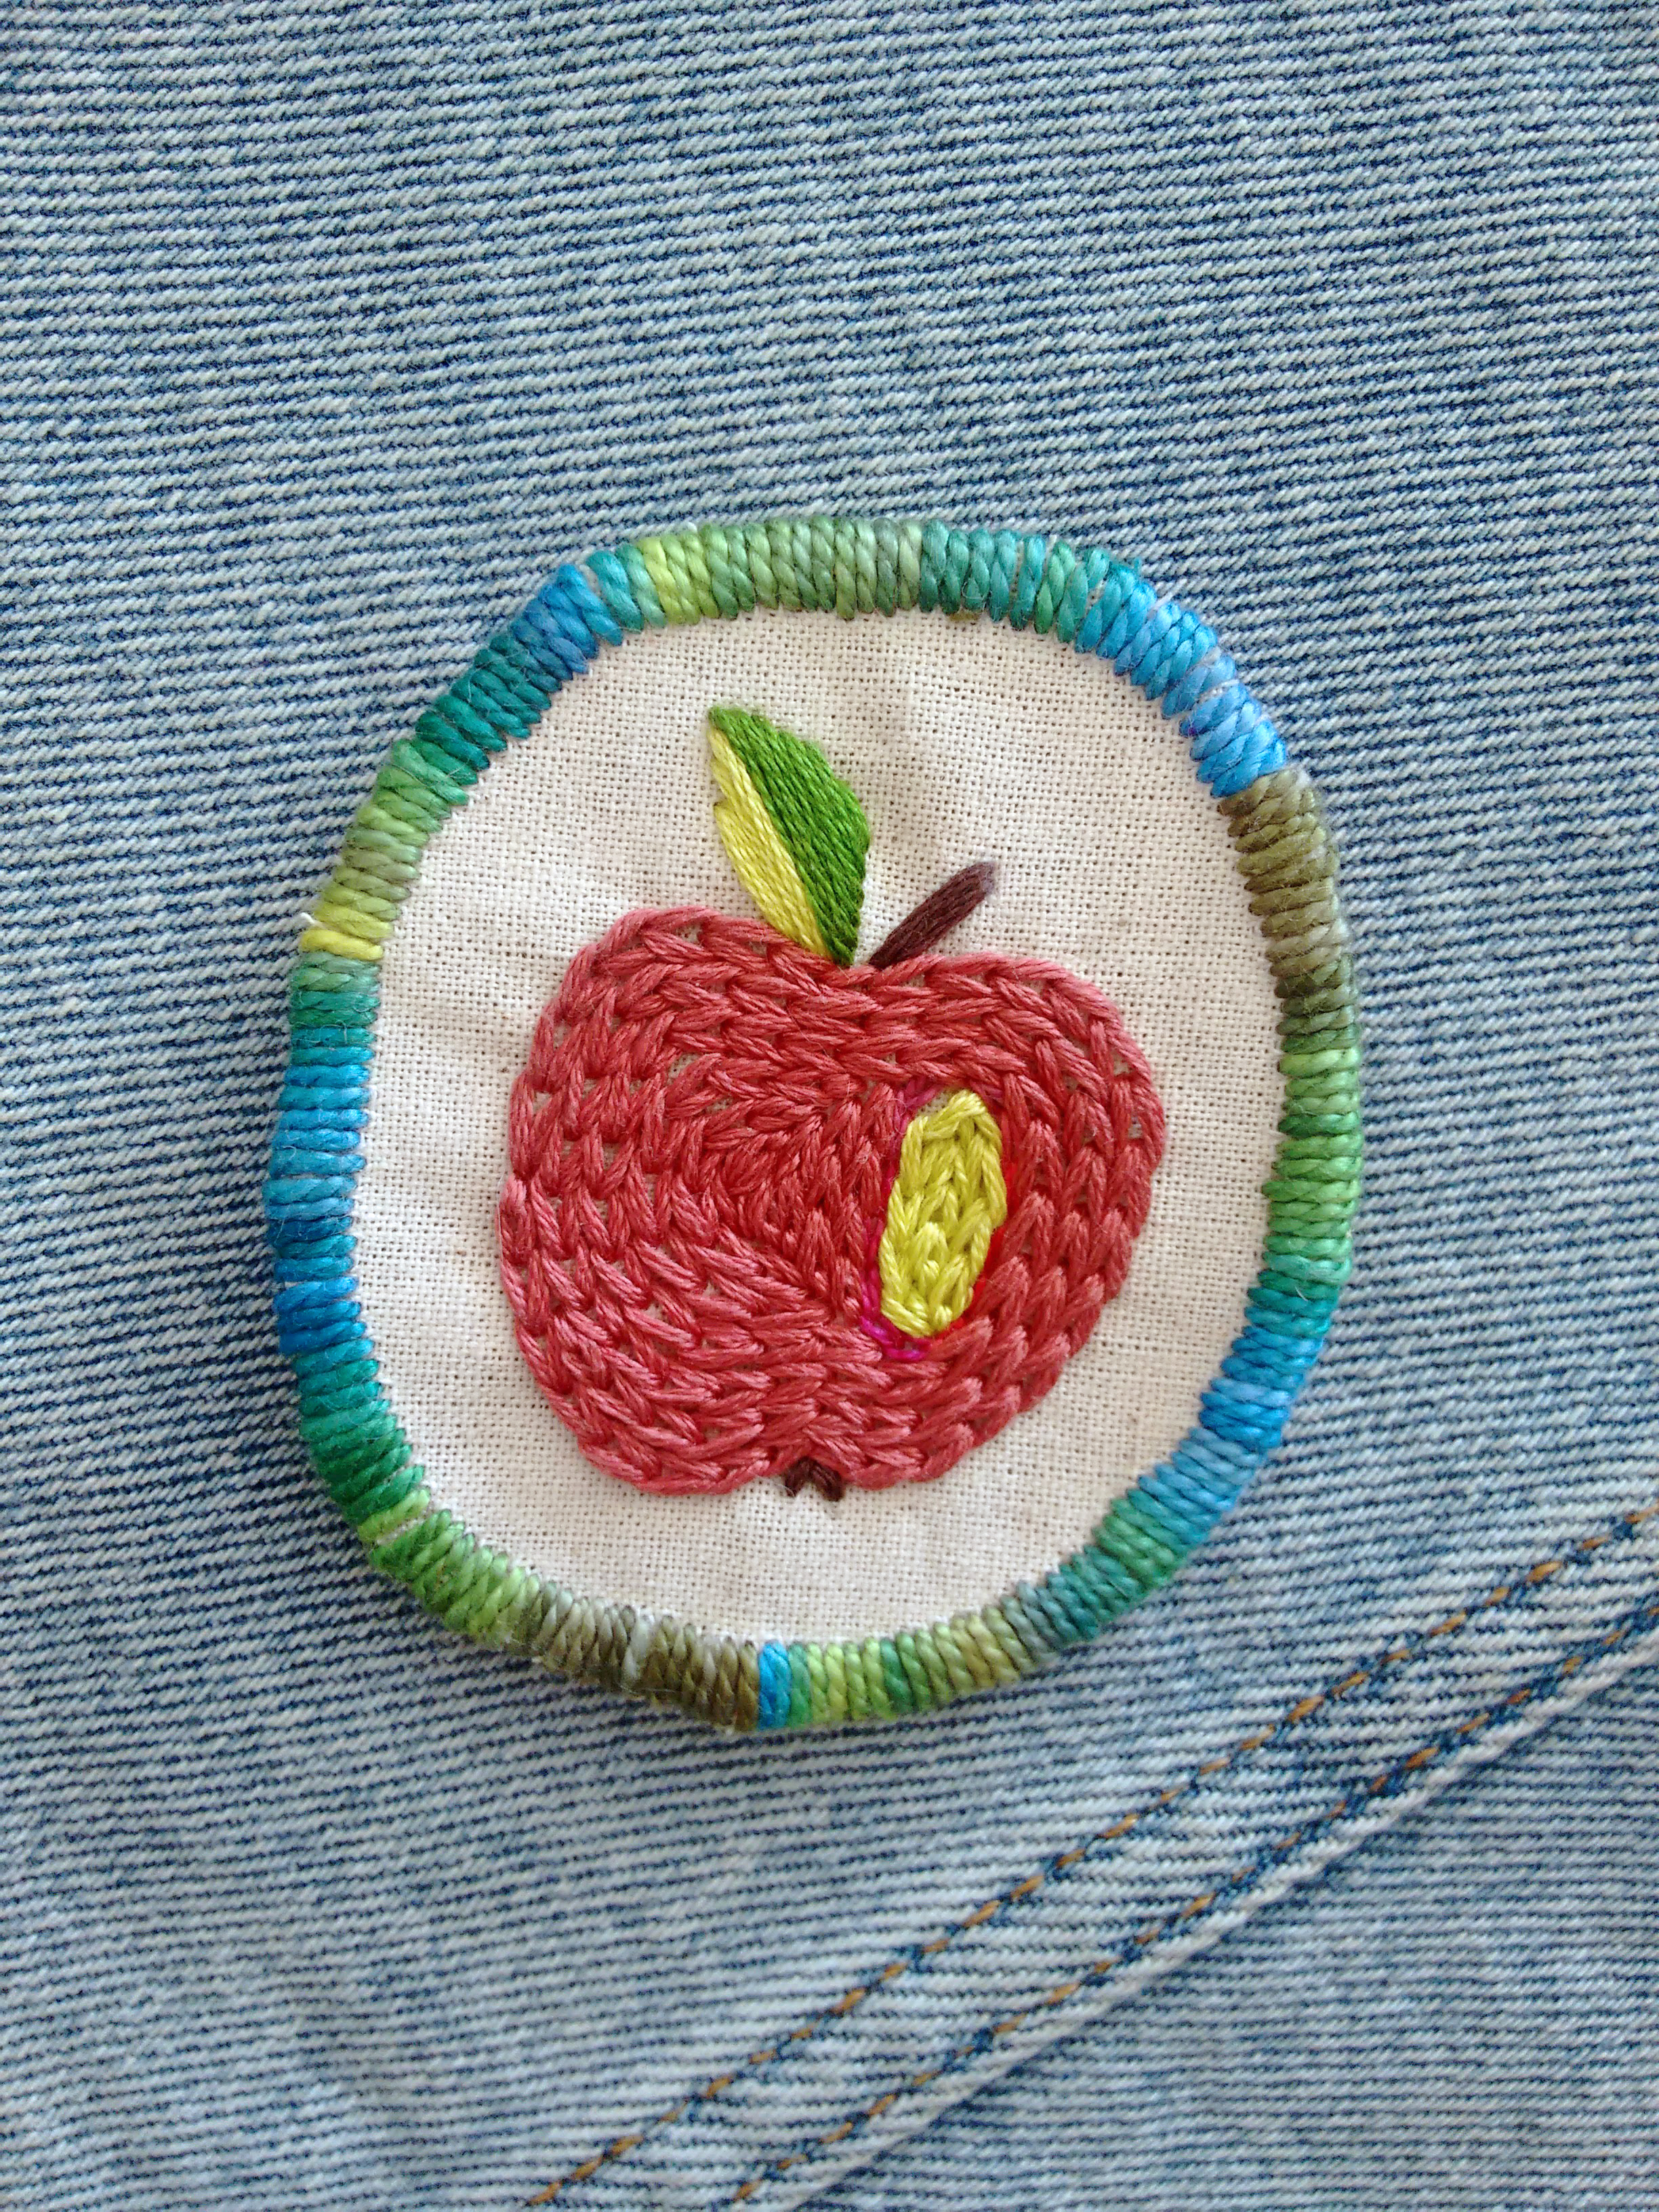 Embroidered apple patch with a blue green trim